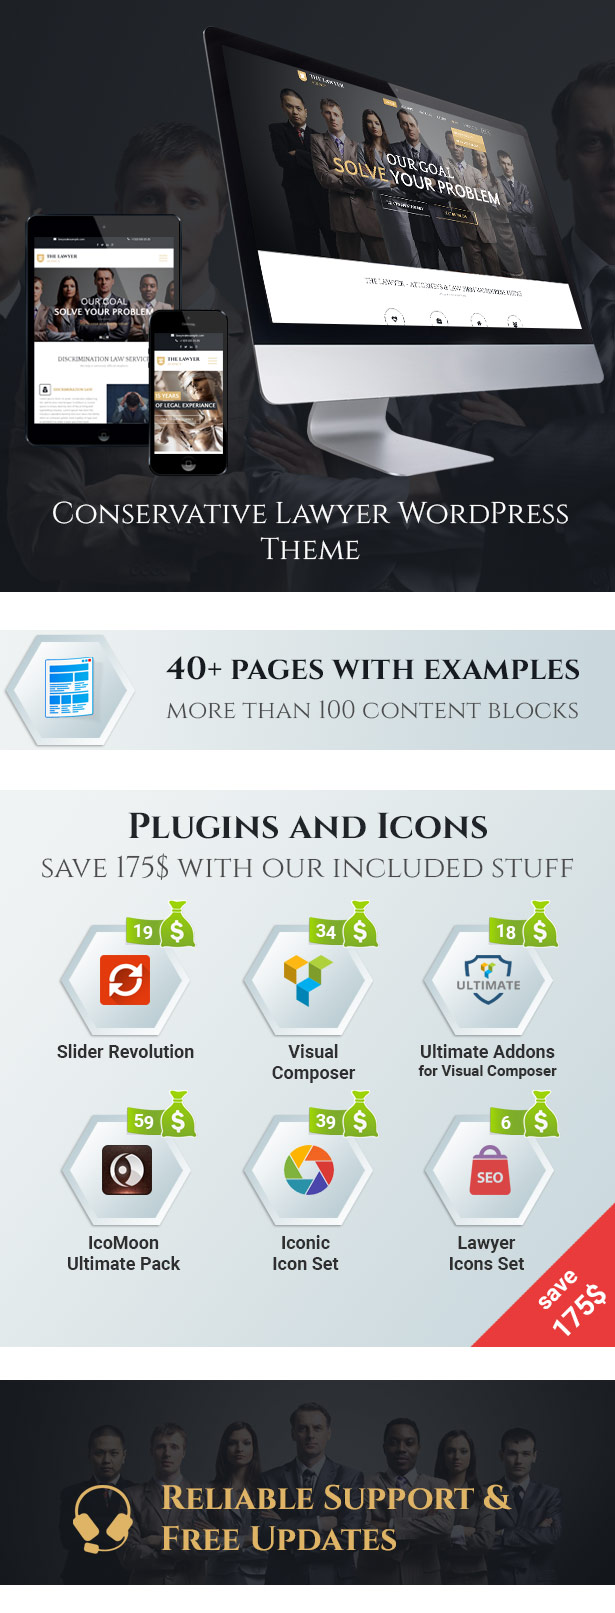 The Lawyer WordPress Theme Demonstrations